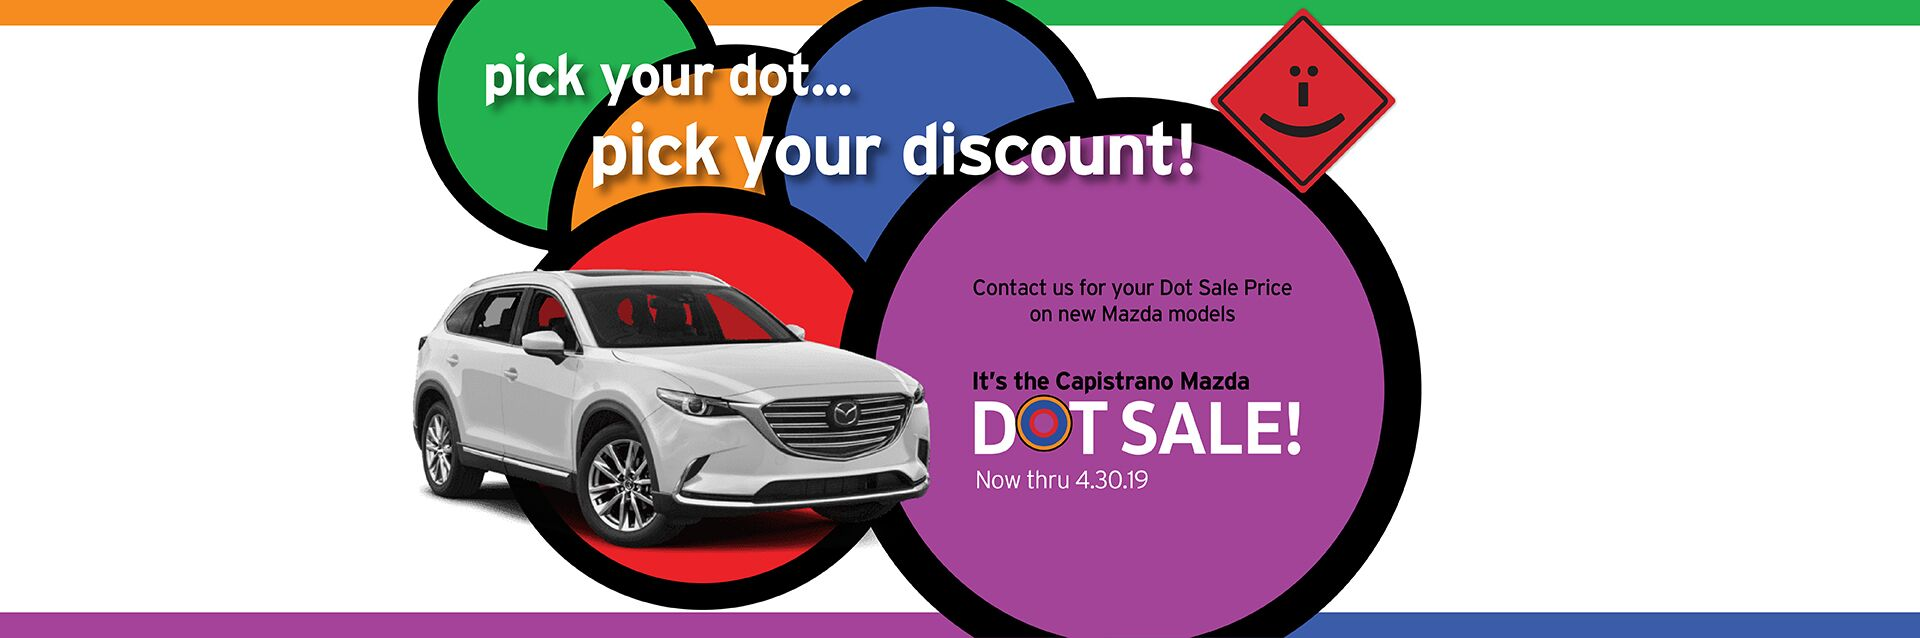 Capistrano Mazda Dot Sale - Contact us for your special Dot Sale Price now thru April 30th